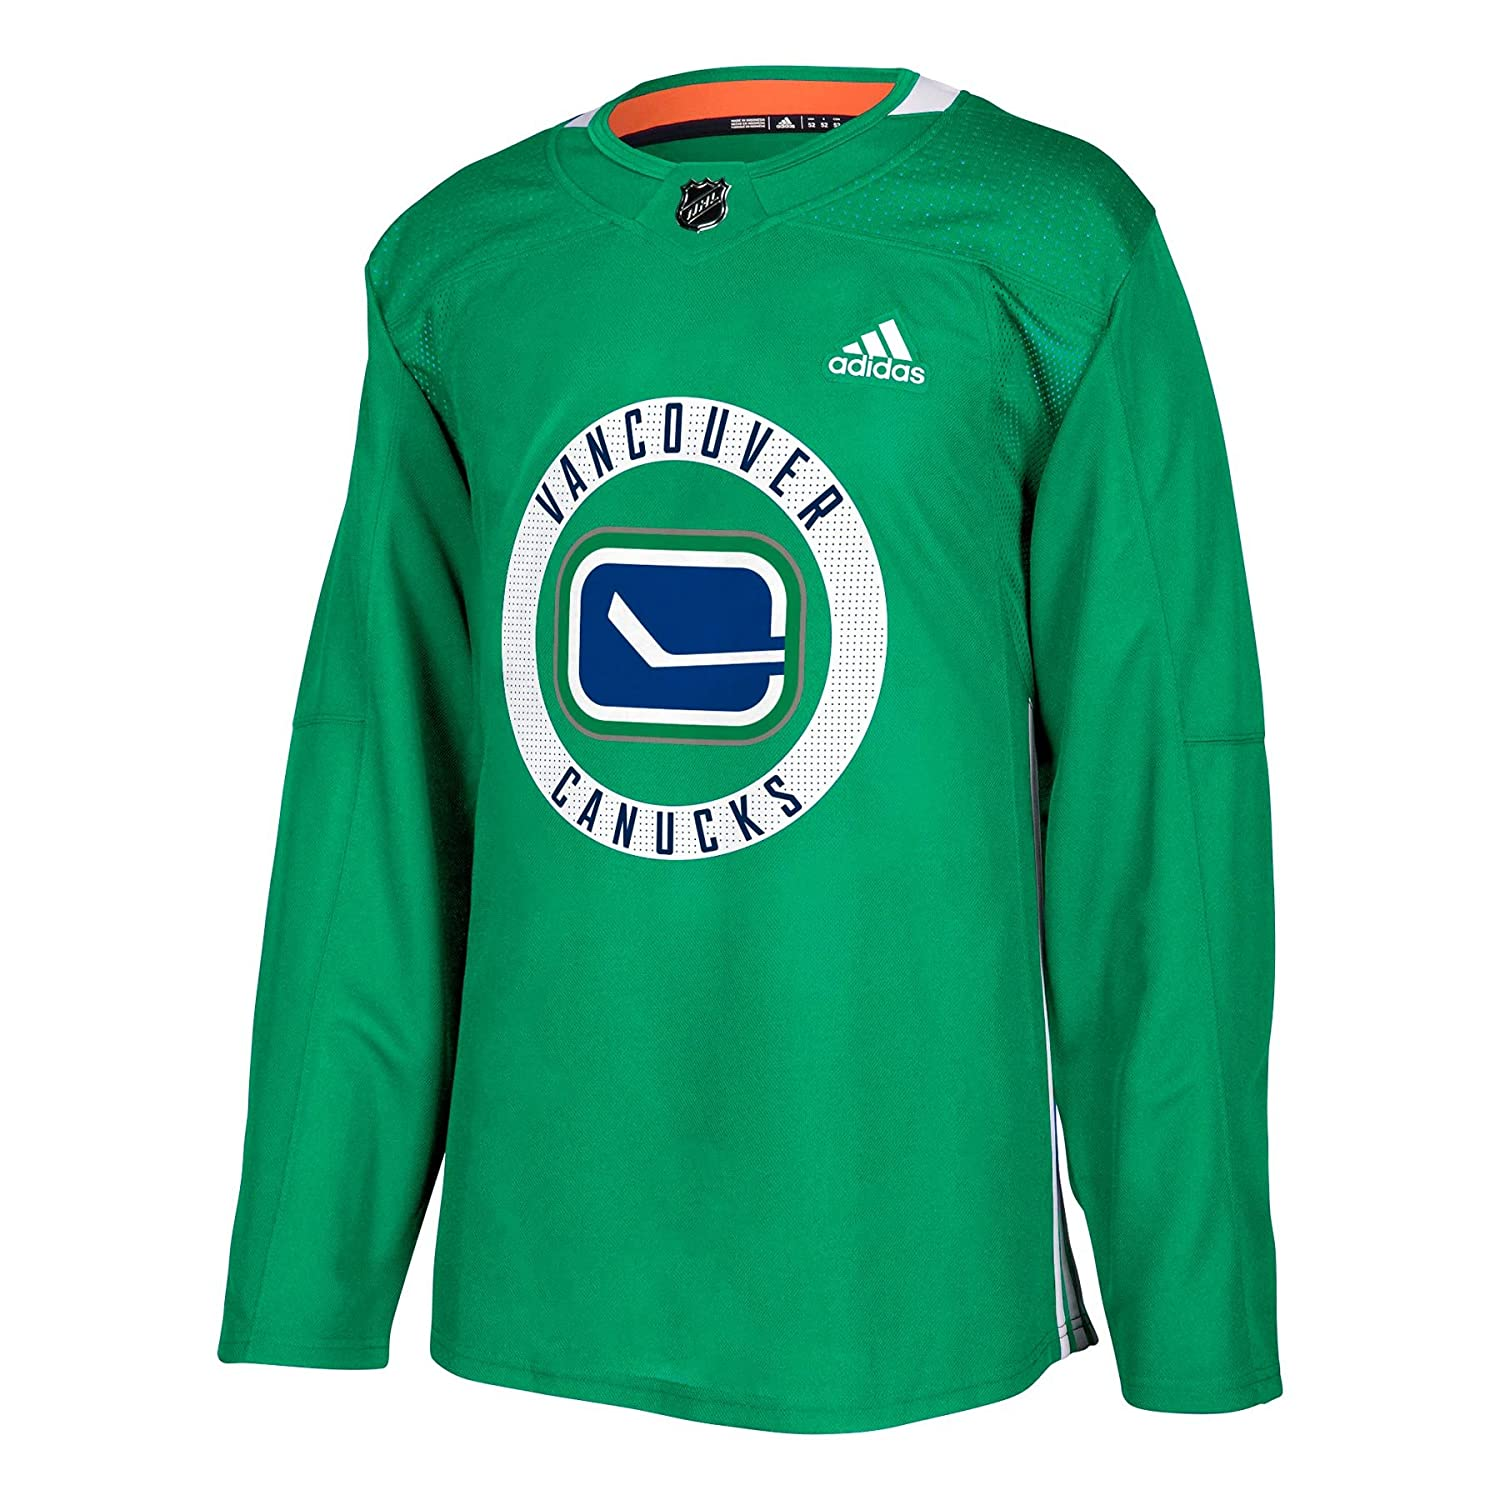 Vancouver Canucks adidas adizero NHL Authentic Pro Practice Jersey - - 54  (XL) 1fc2e3db342